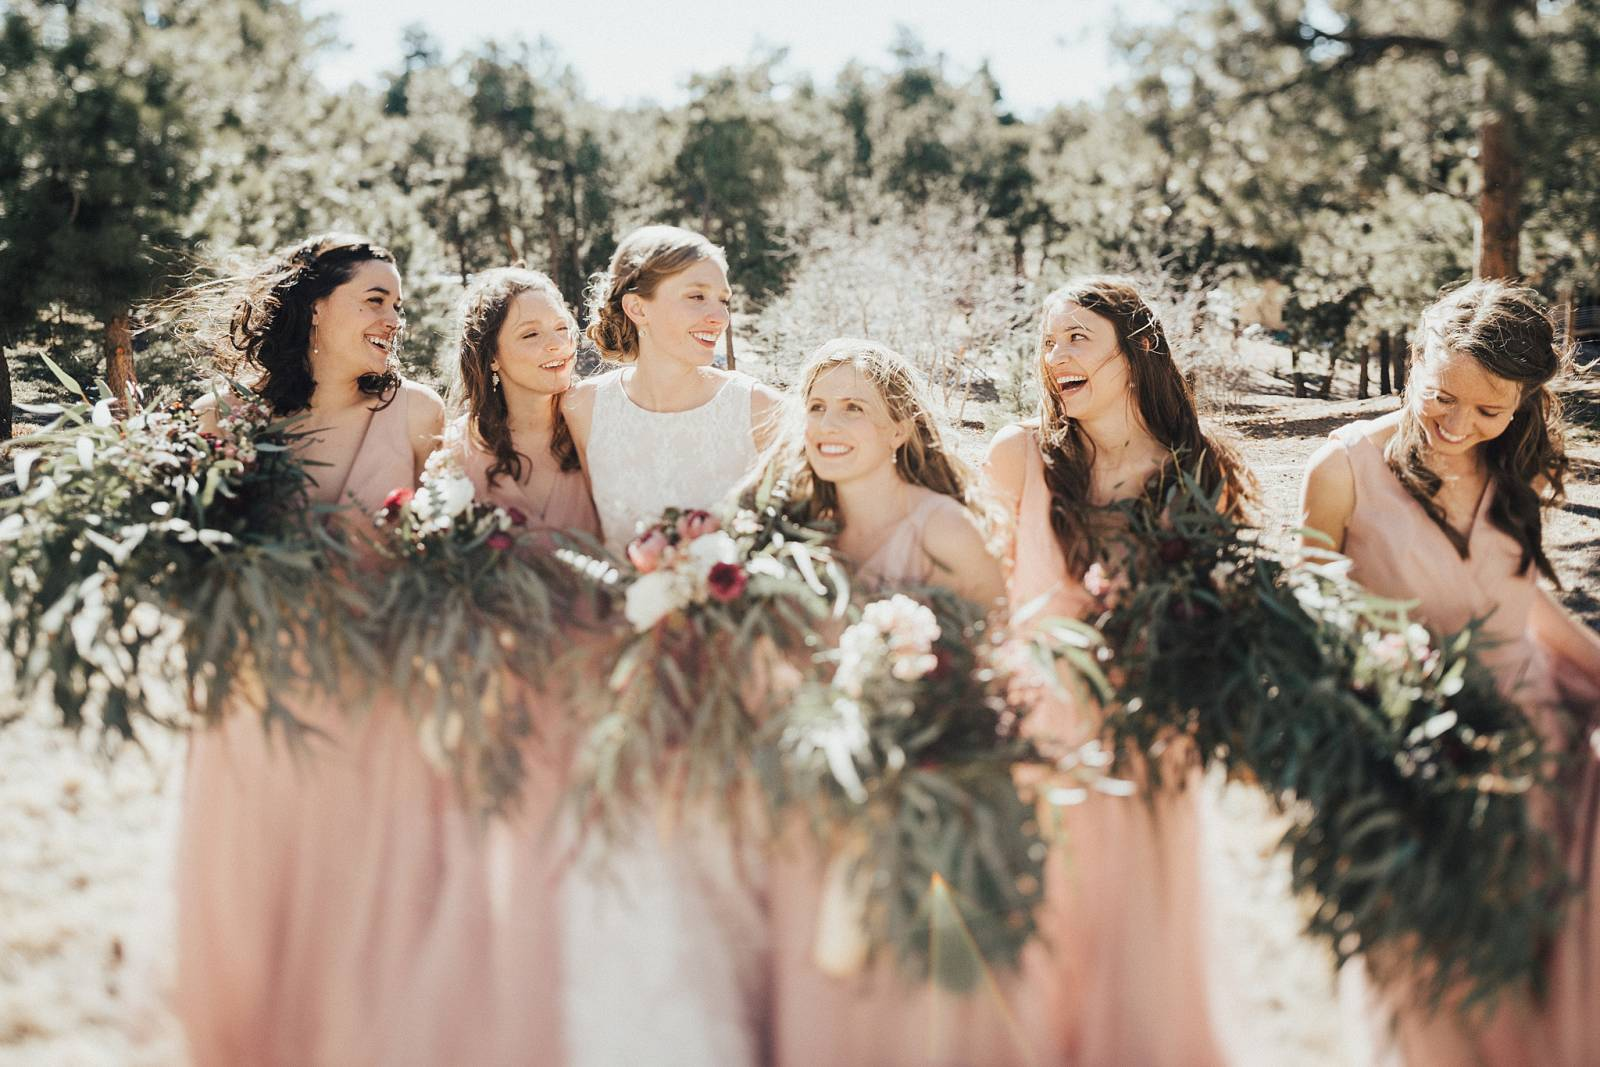 bride with bridesmaids in blush colored dresses